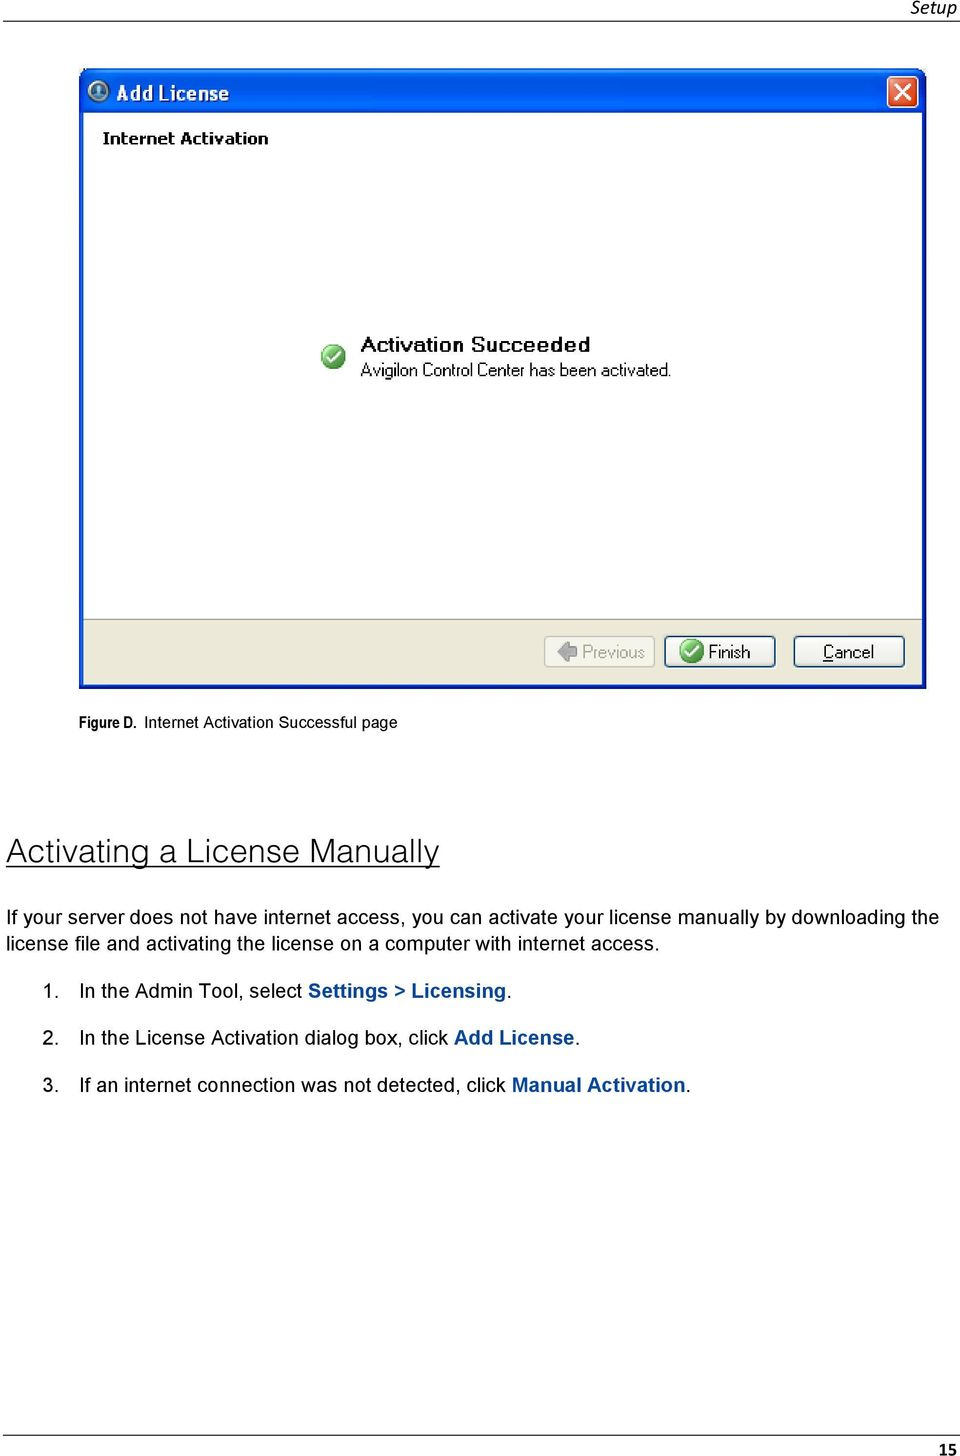 you can activate your license manually by downloading the license file and activating the license on a computer